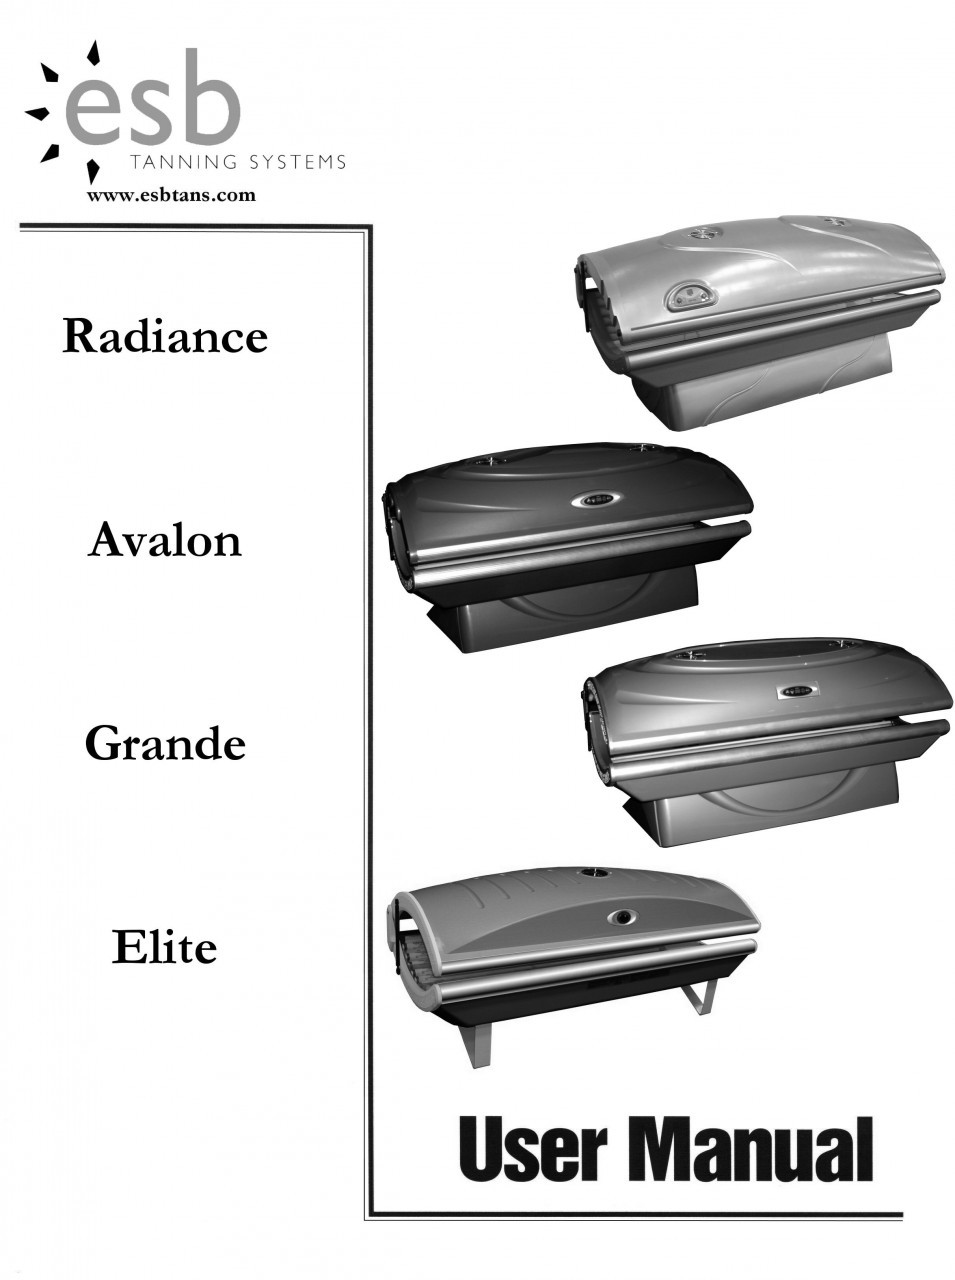 Esb Grande  Tanning Bed Manual